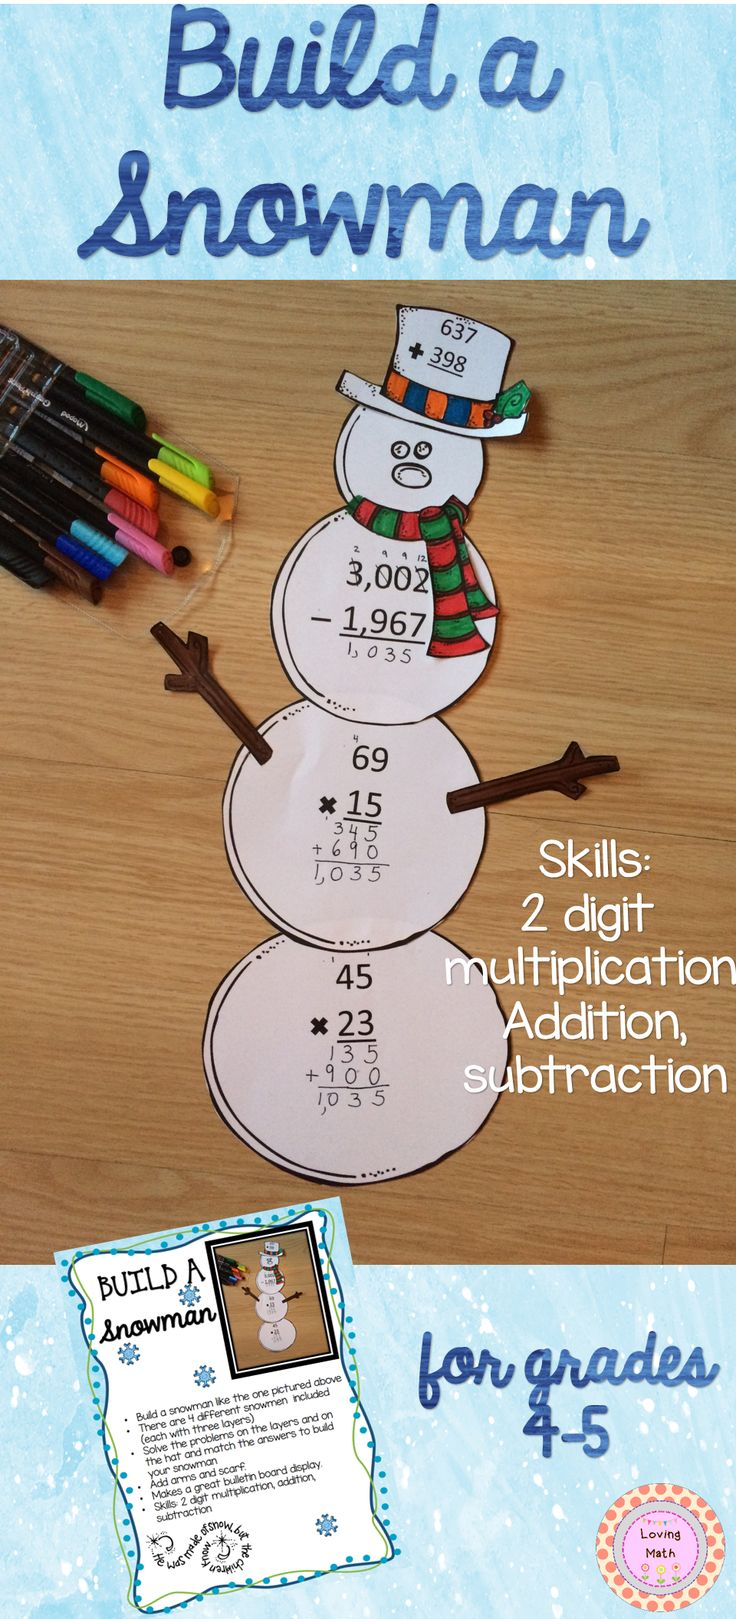 Fun Craftivity! Build a snowman and practice math skills: 2 digit multiplication, addition, and subtraction! Great for bulletin board displays.